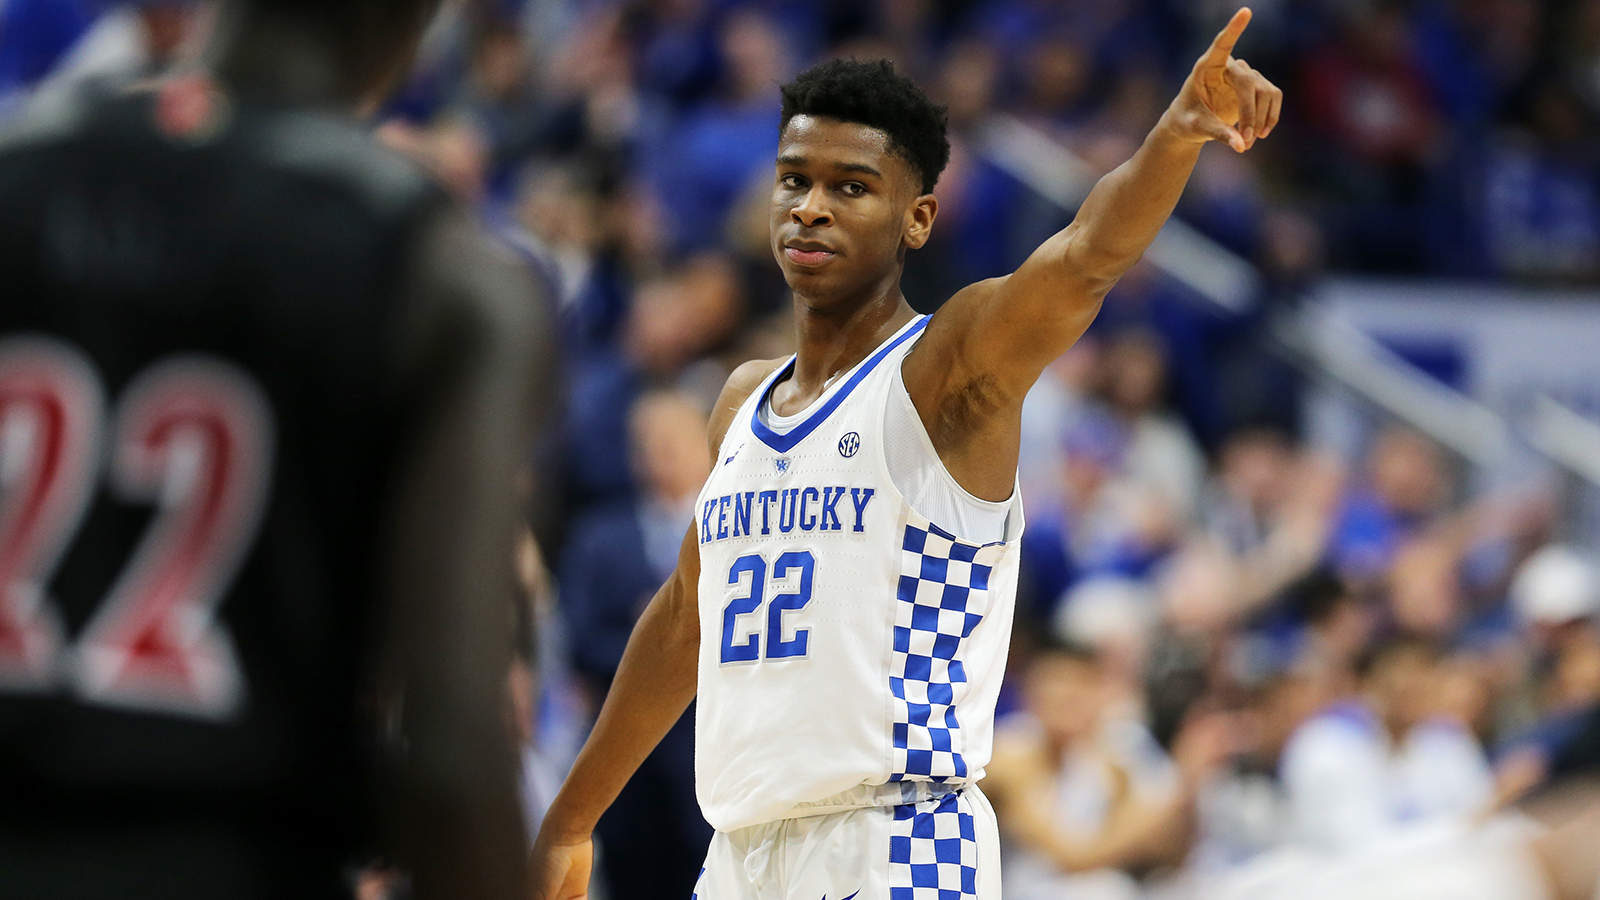 How To Watch Uk Basketball Play Etsu Game Time Tv: What Channel Is The Uk Vs Ul Basketball Game On